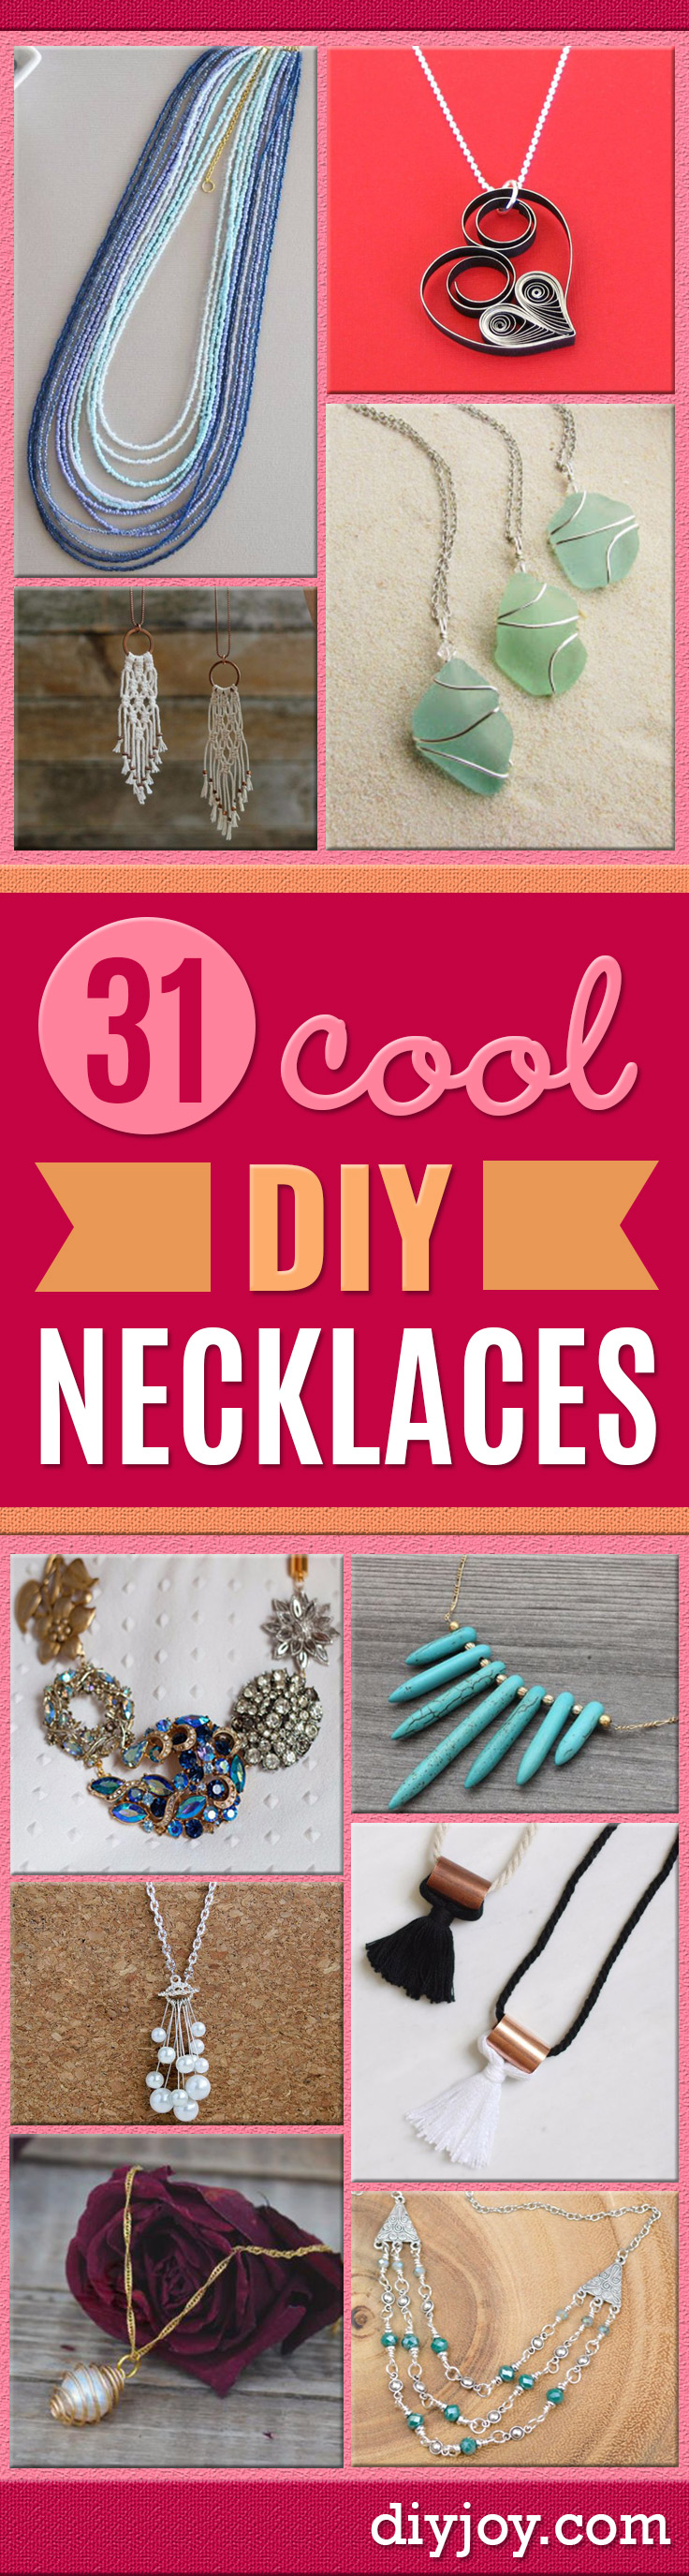 DIY Necklace Ideas - Easy DYI Necklaces with Step by Step Jewelry Making Tutorials - How to Make A Pendant, Beaded Necklace for Gift, Statement, Choker, Layered Boho, Chain and Simple Looks - Creative Christmas Gifts for Women and Teens, Girls - Teen Crafts, Tween and Teenagers #necklaces #diyjewelry